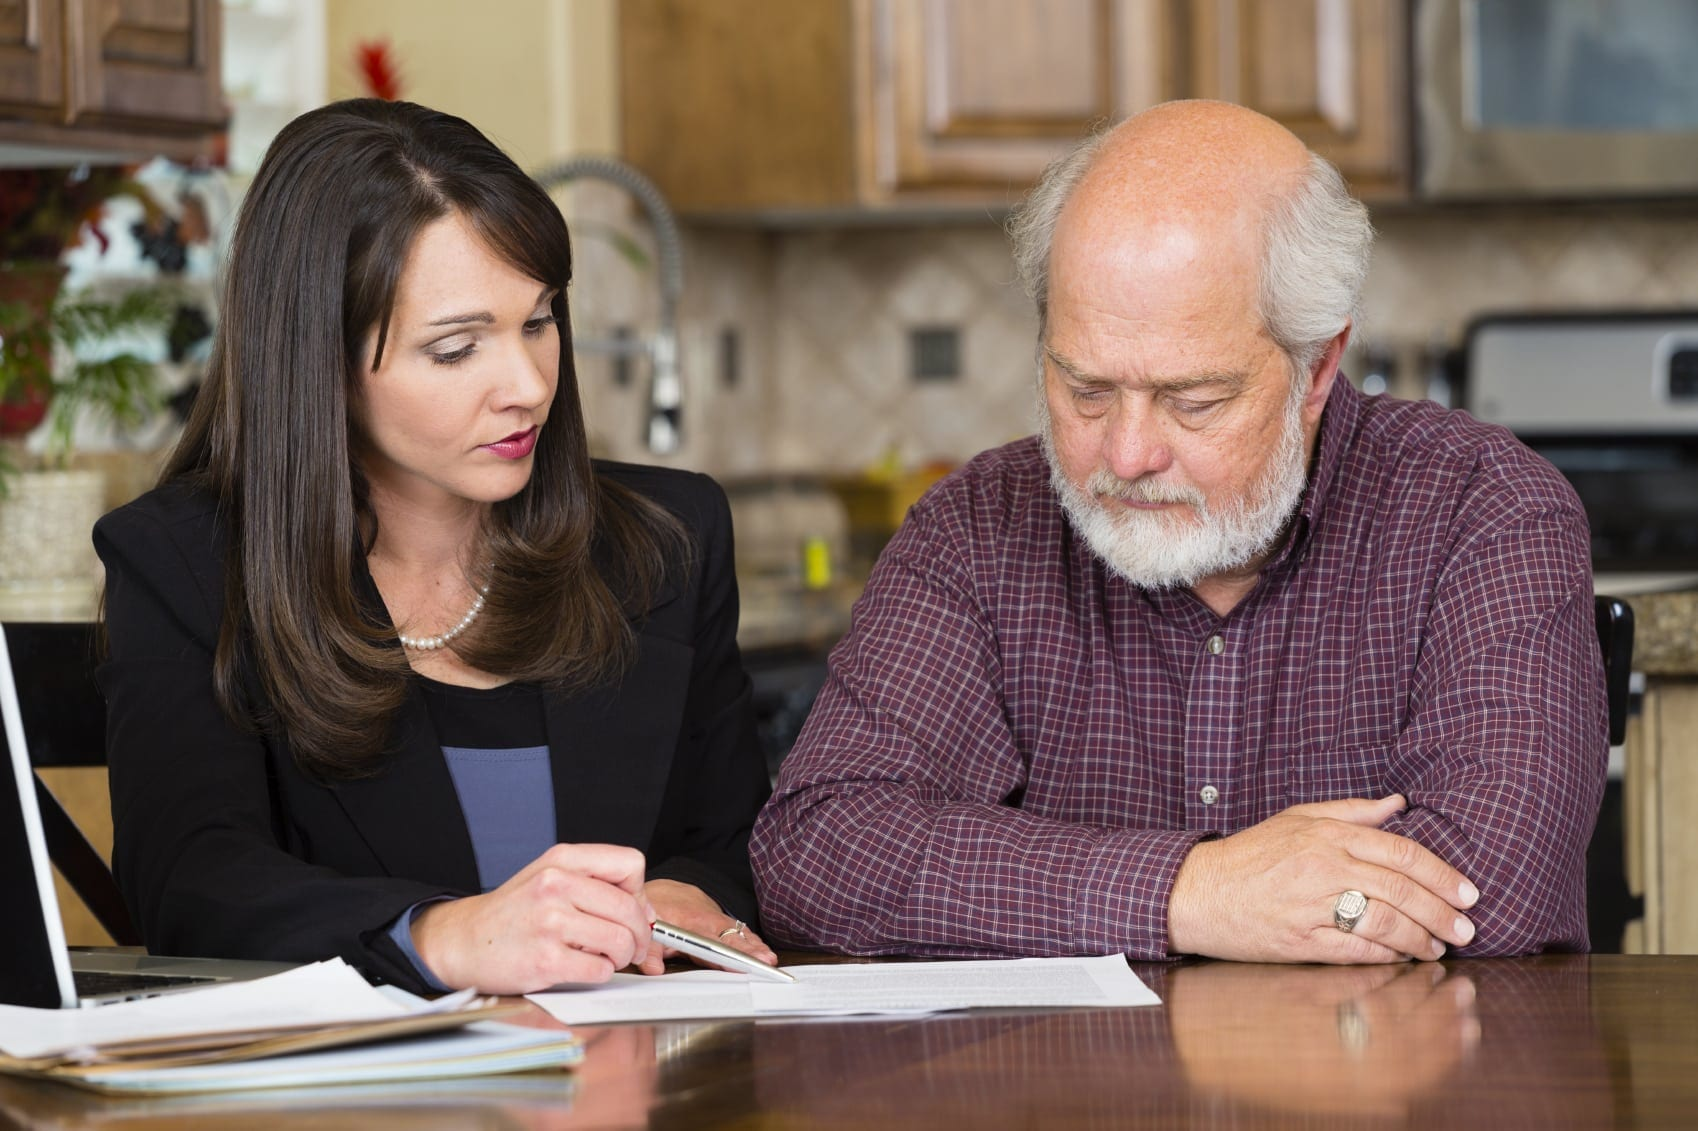 Female Attorney Advising Elderly Male Client Stock Photo